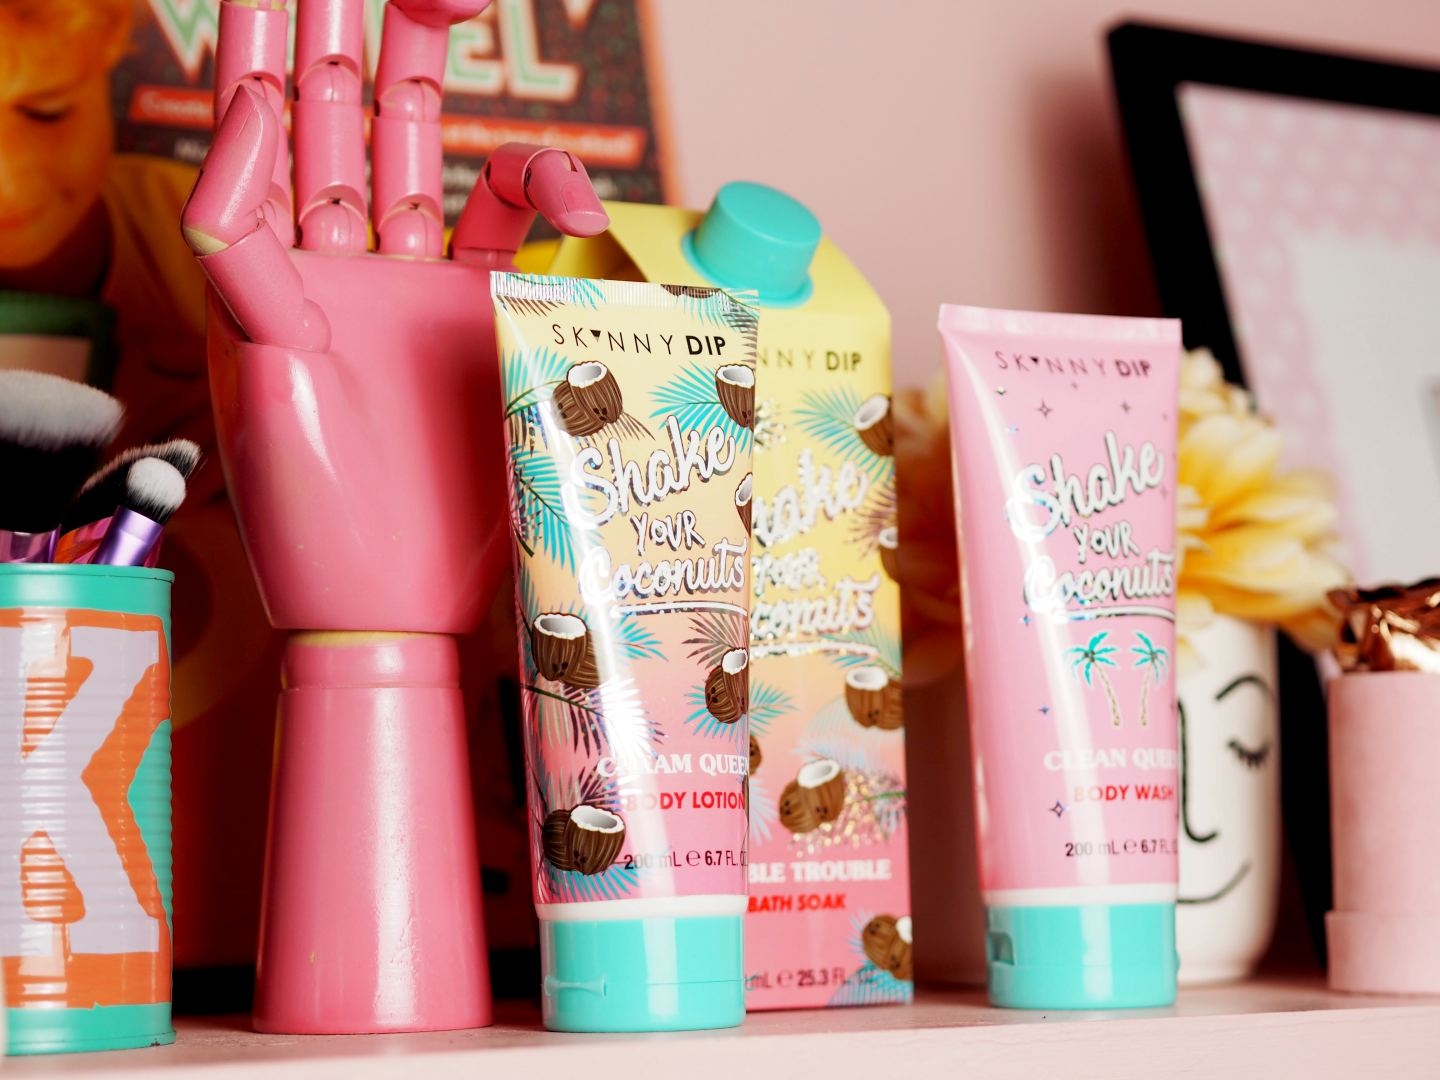 skinnydip london bath and body products